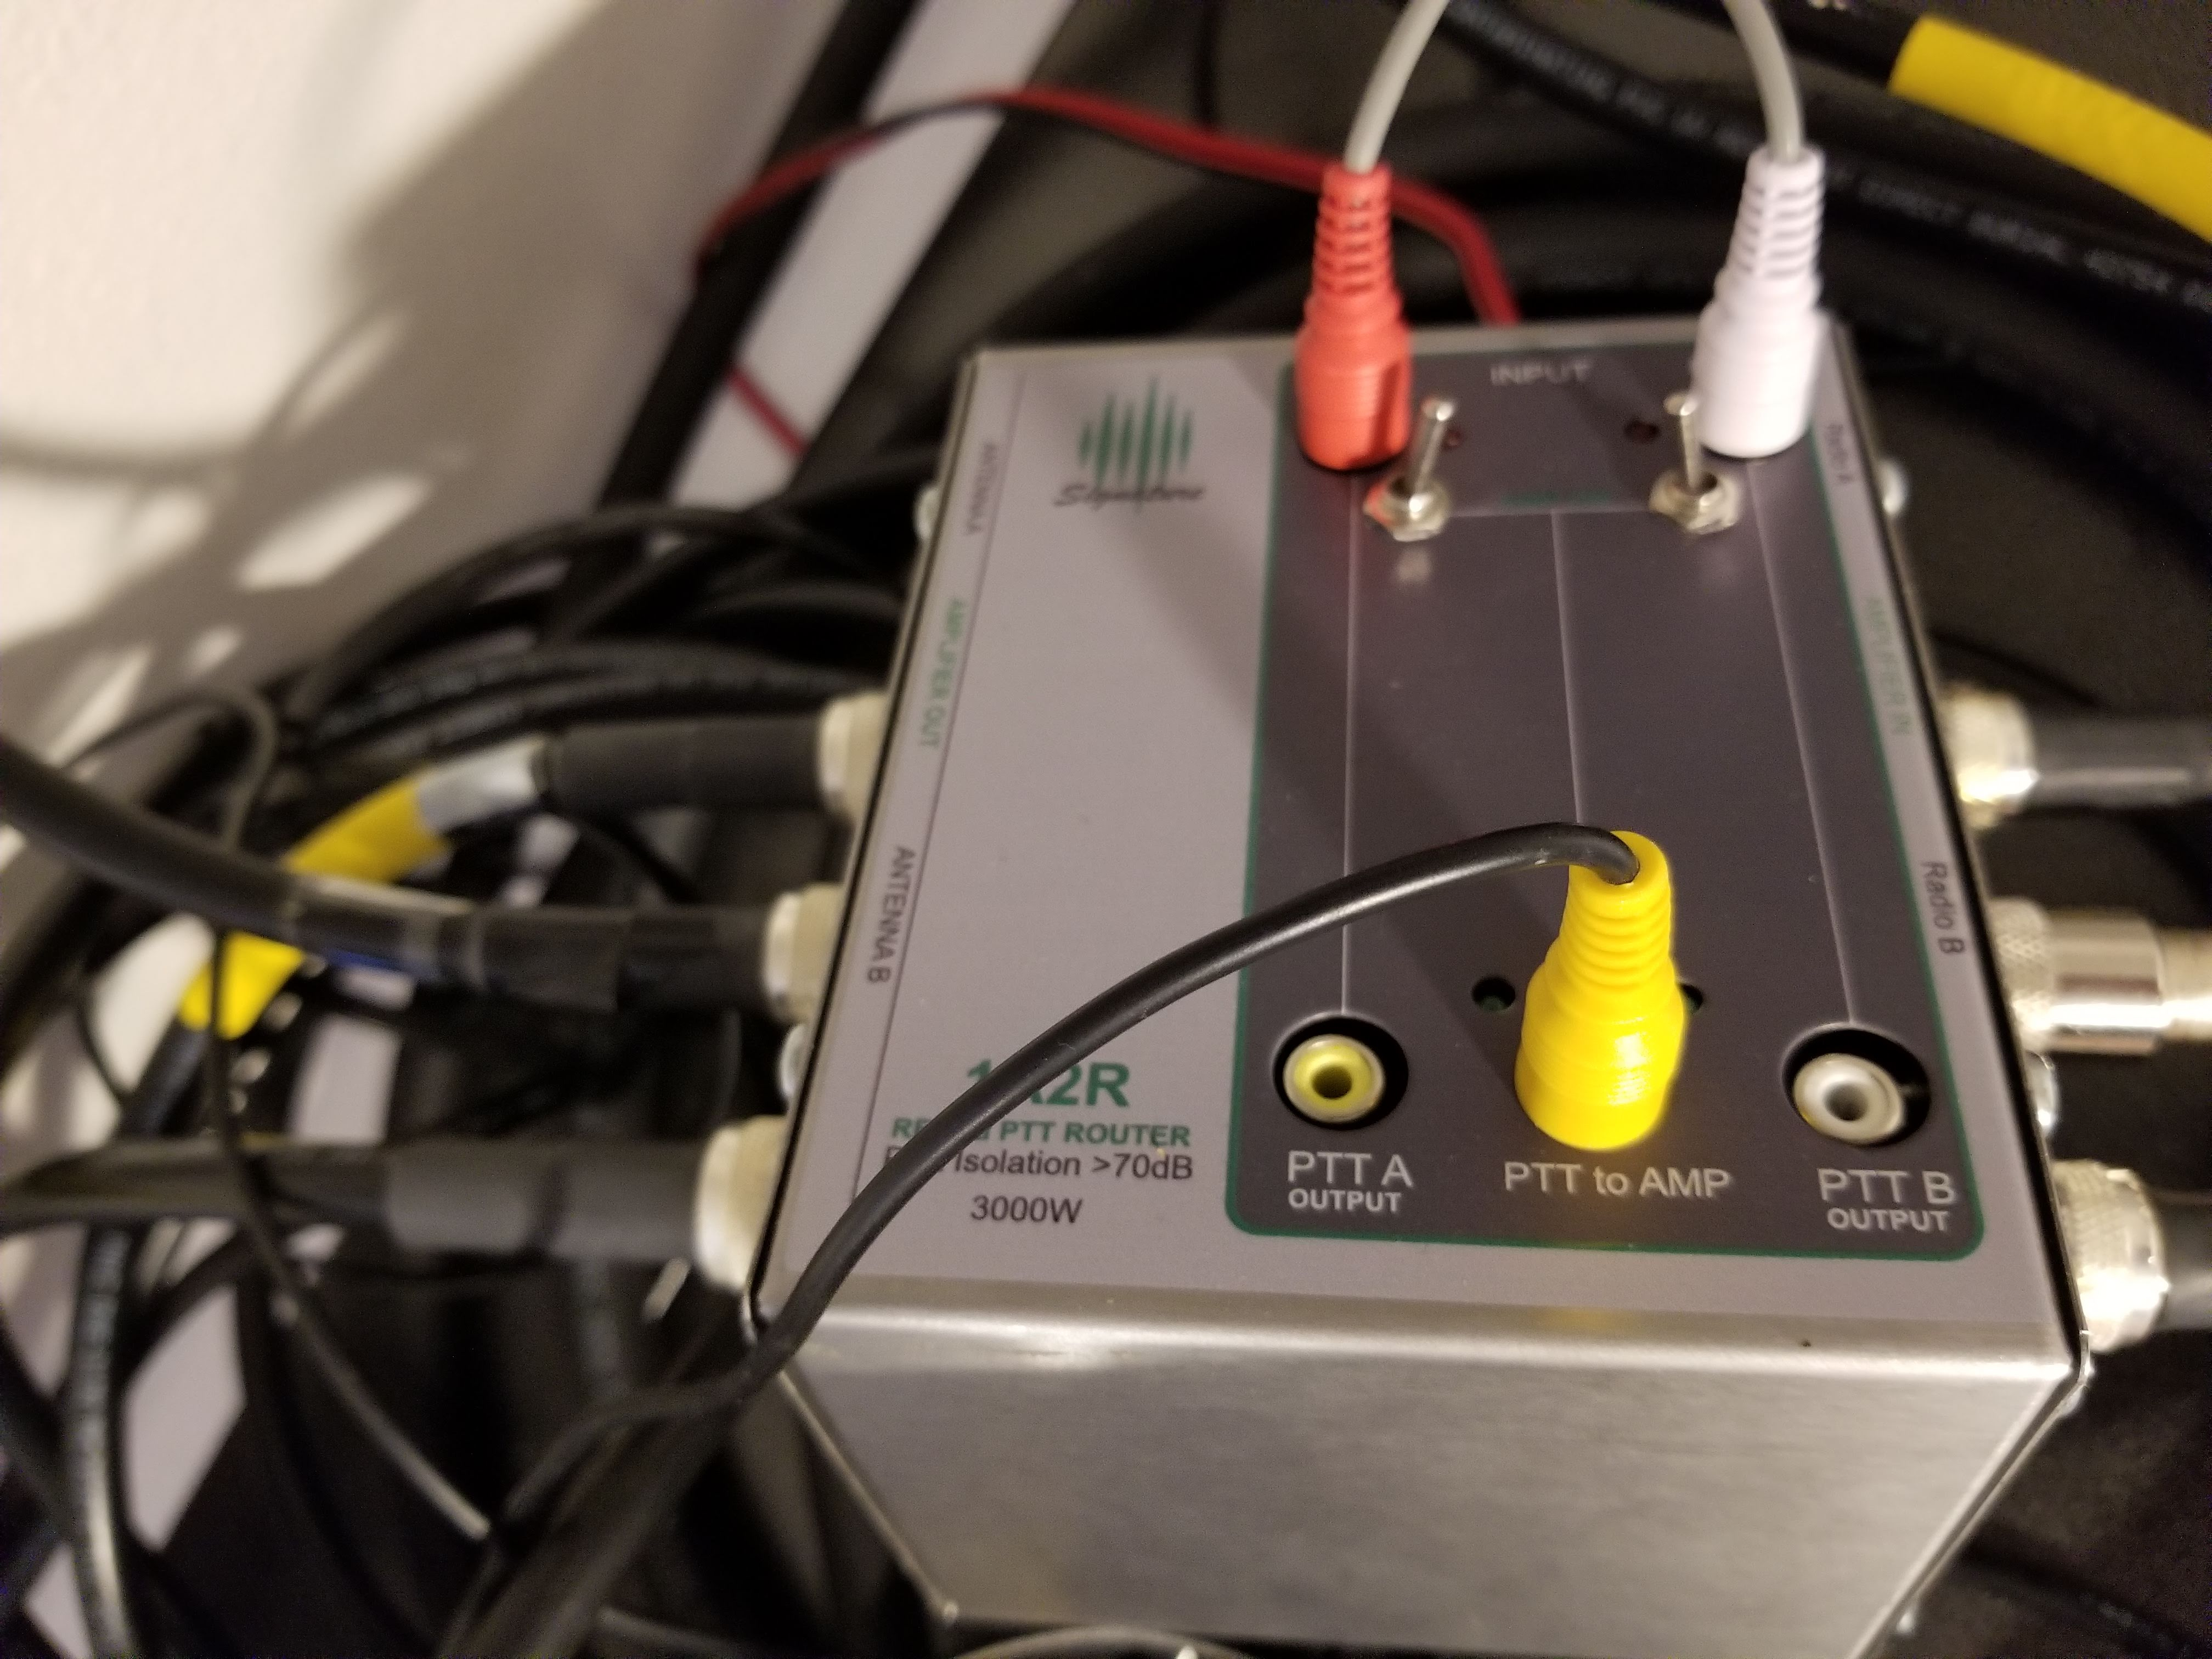 Working SO2R with Flexradio's 6600M, B26 RF2K+ amplifier kit